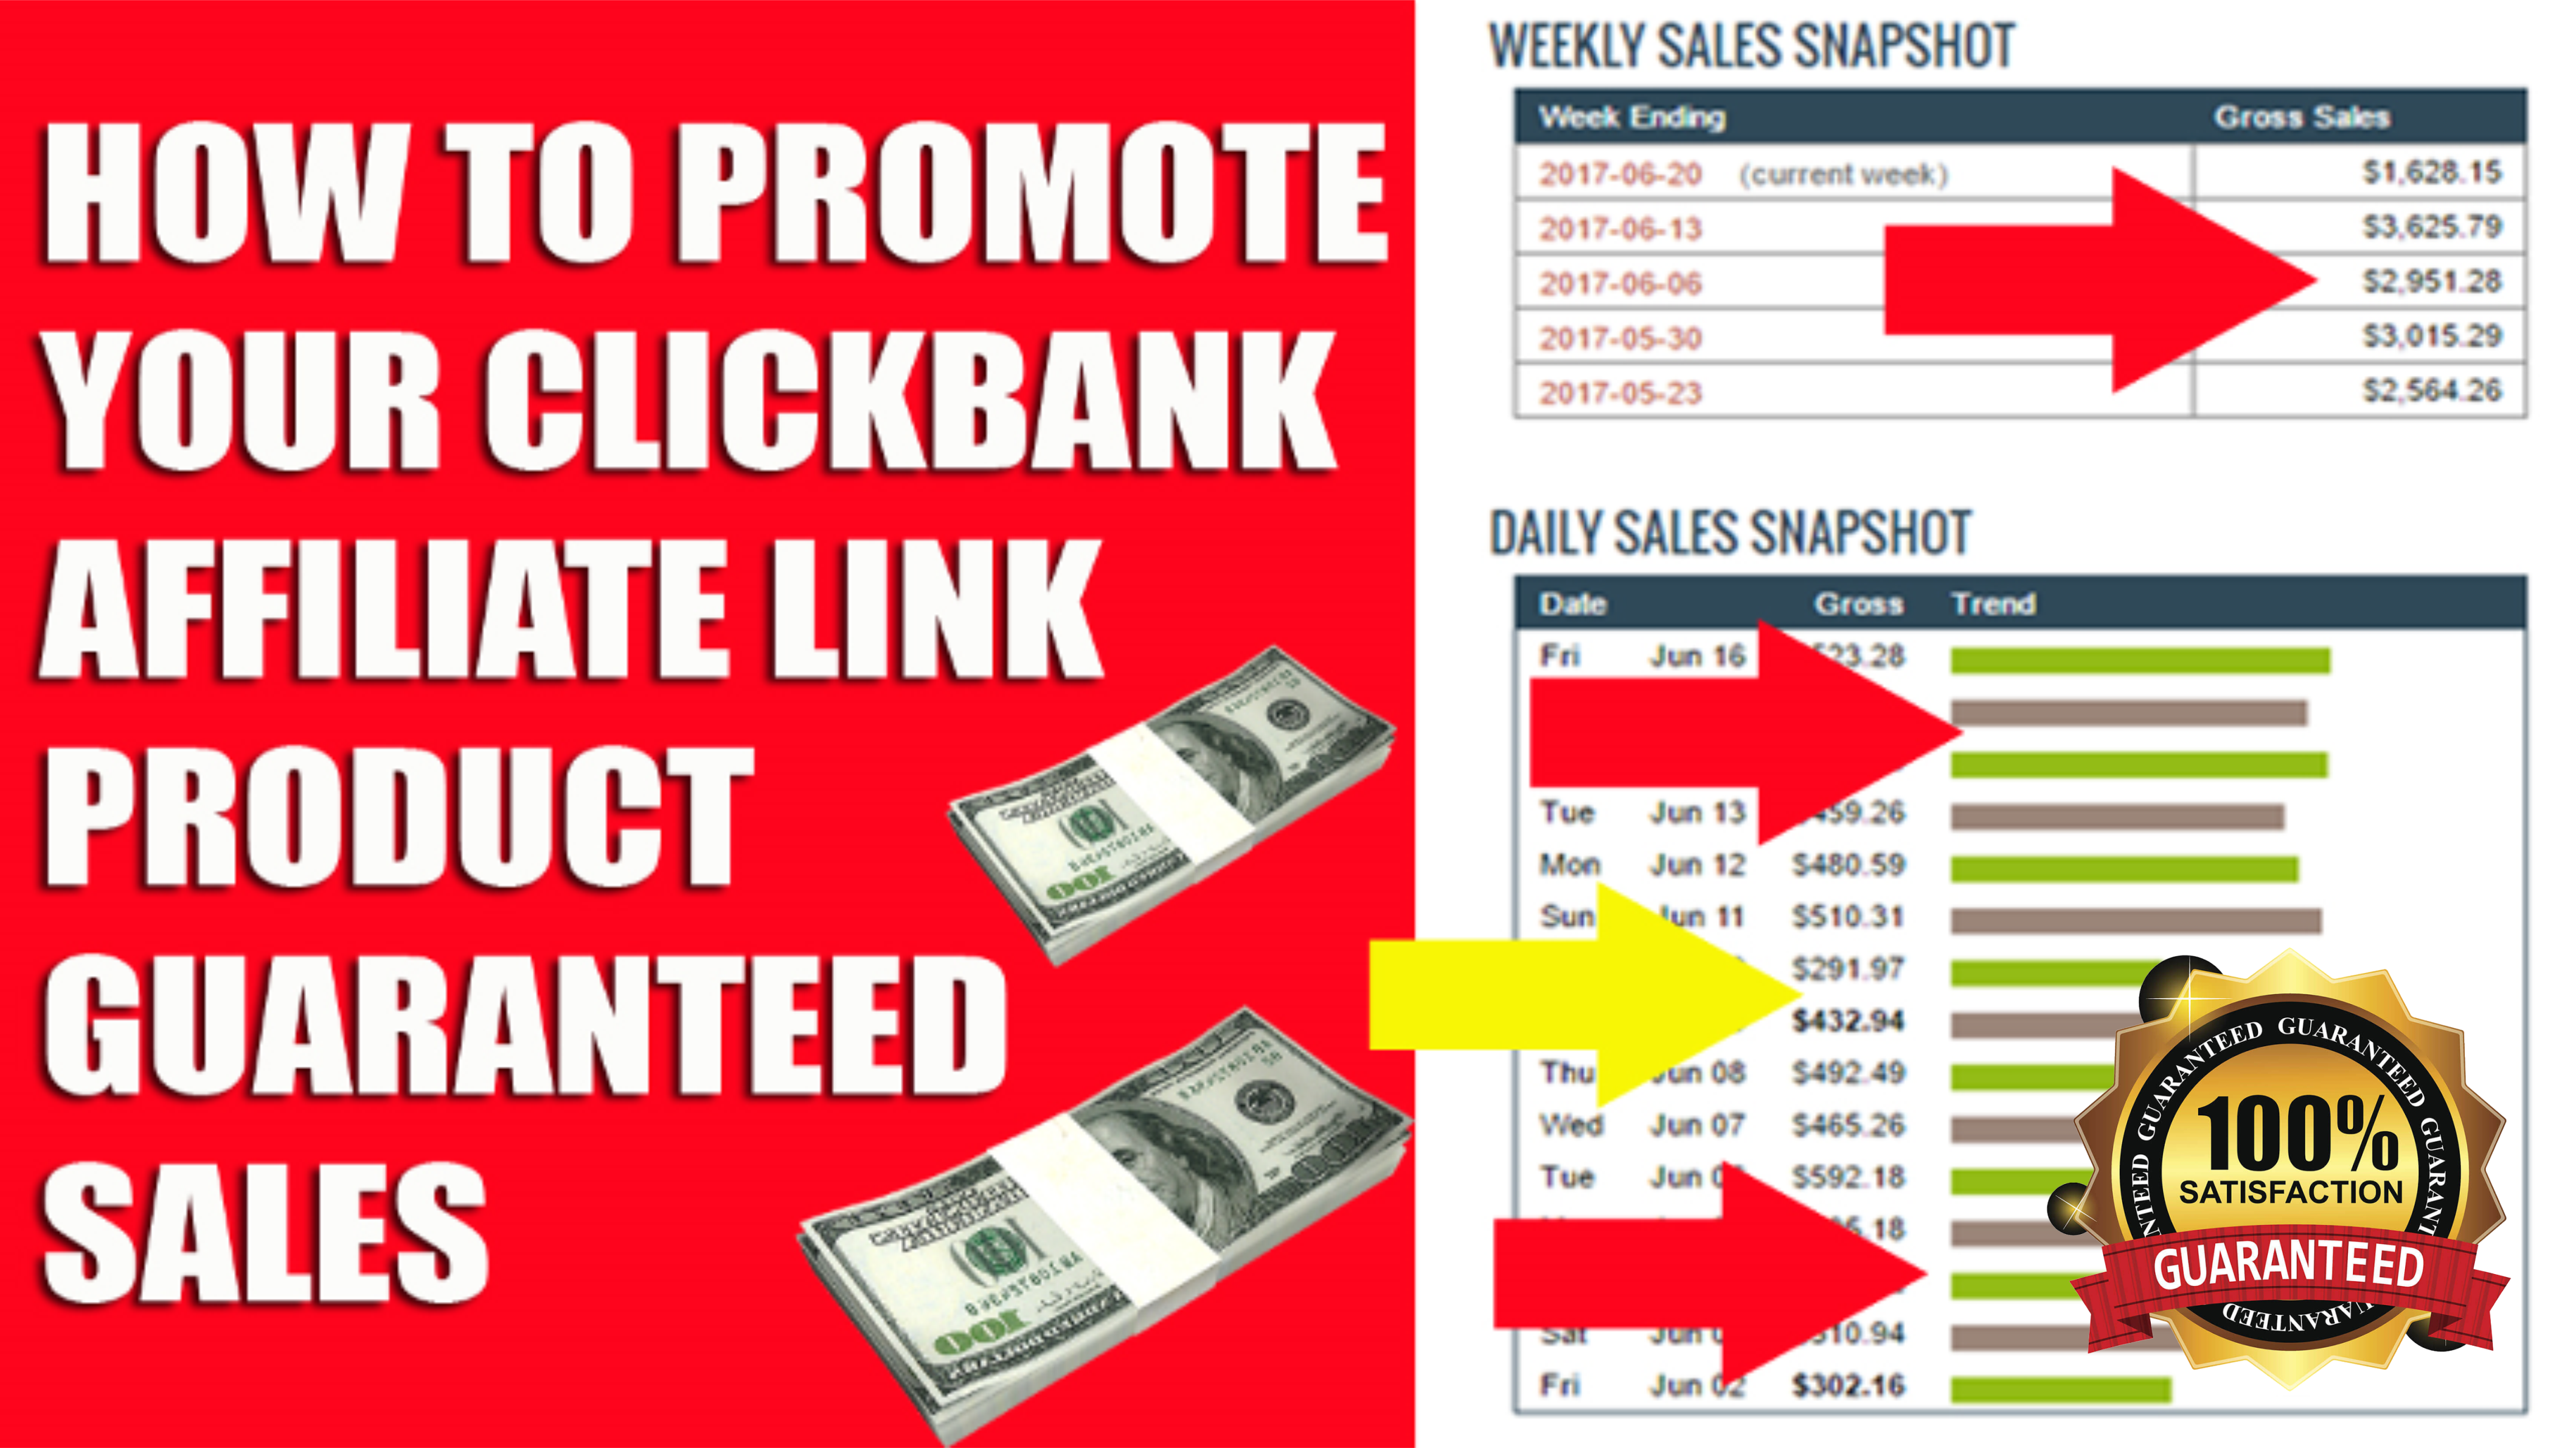 Give Top 5+ Best Traffic Source list To Promote Click Bank Product Sales Guaranteed